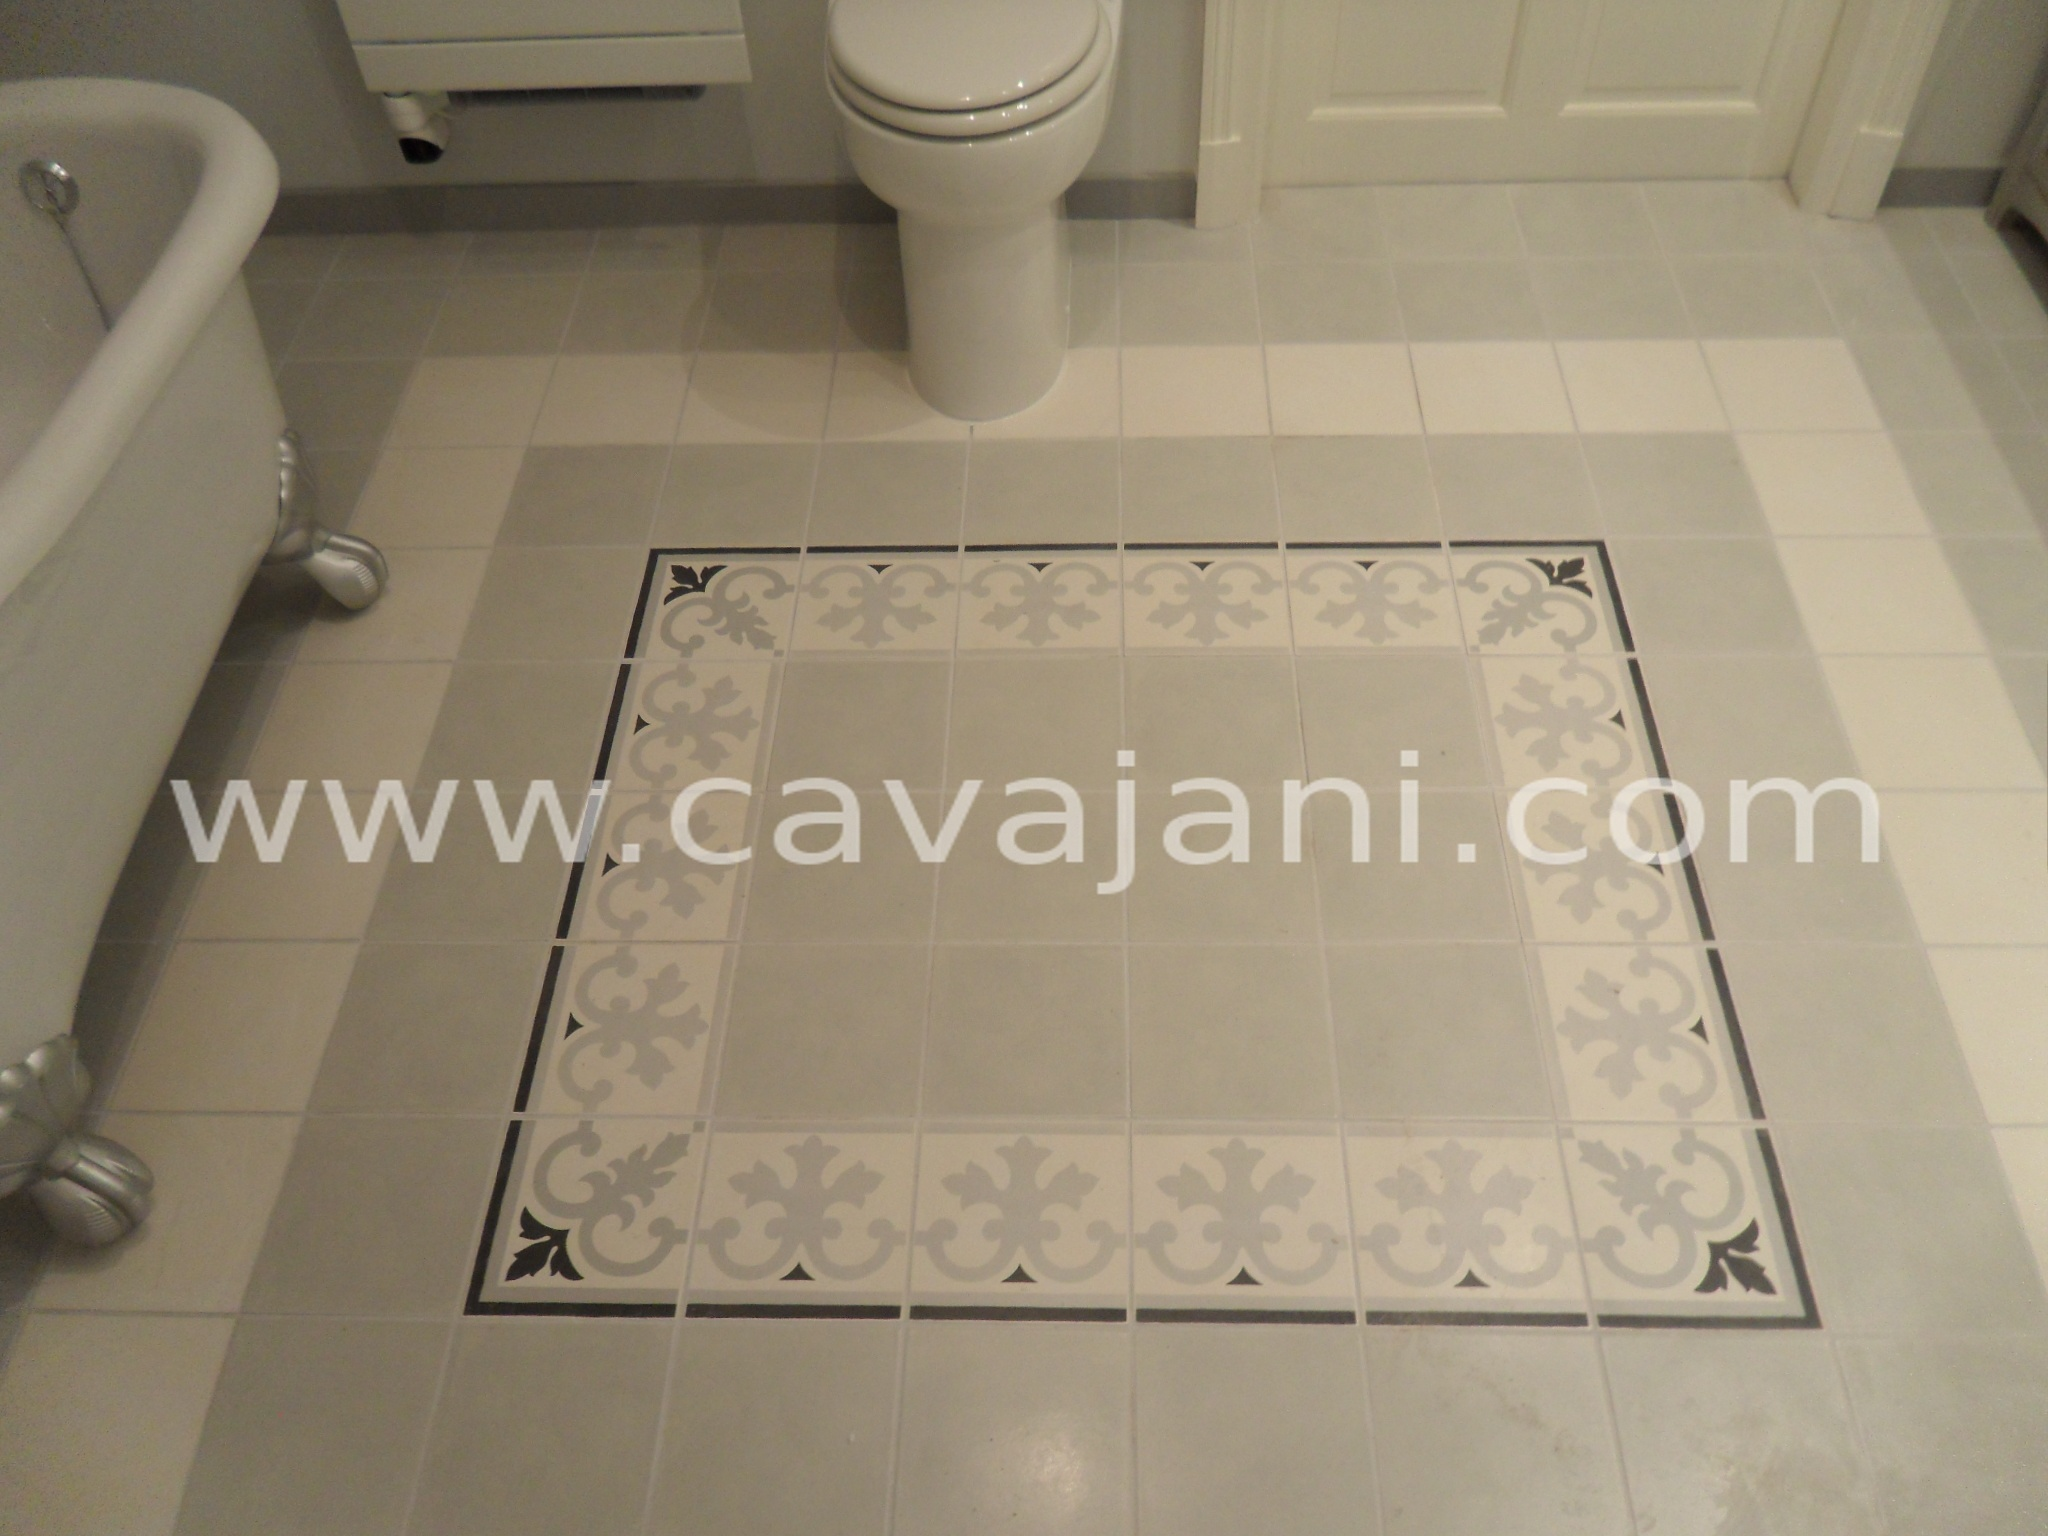 Wolf cavajani votre artisan id al renovation for Plan de calepinage carrelage